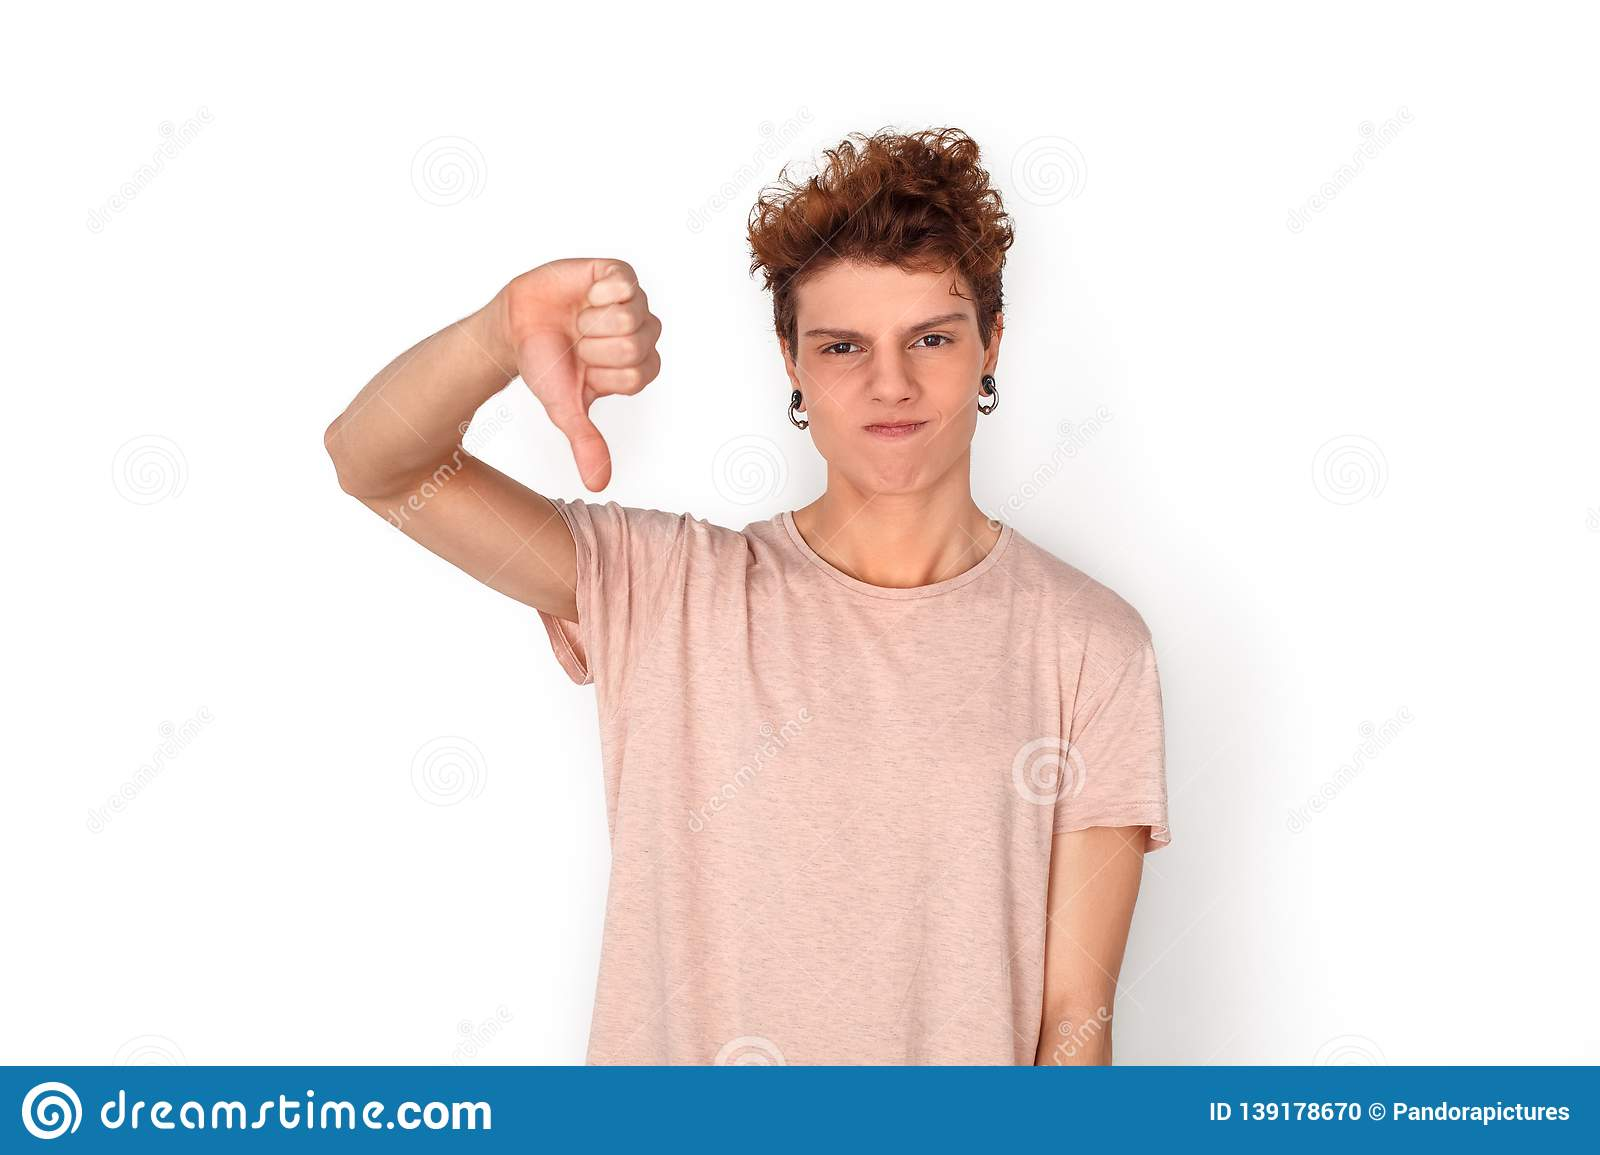 c7166916acbb7 Teenager With Earrings Studio Standing Isolated On White Thumb Down ...